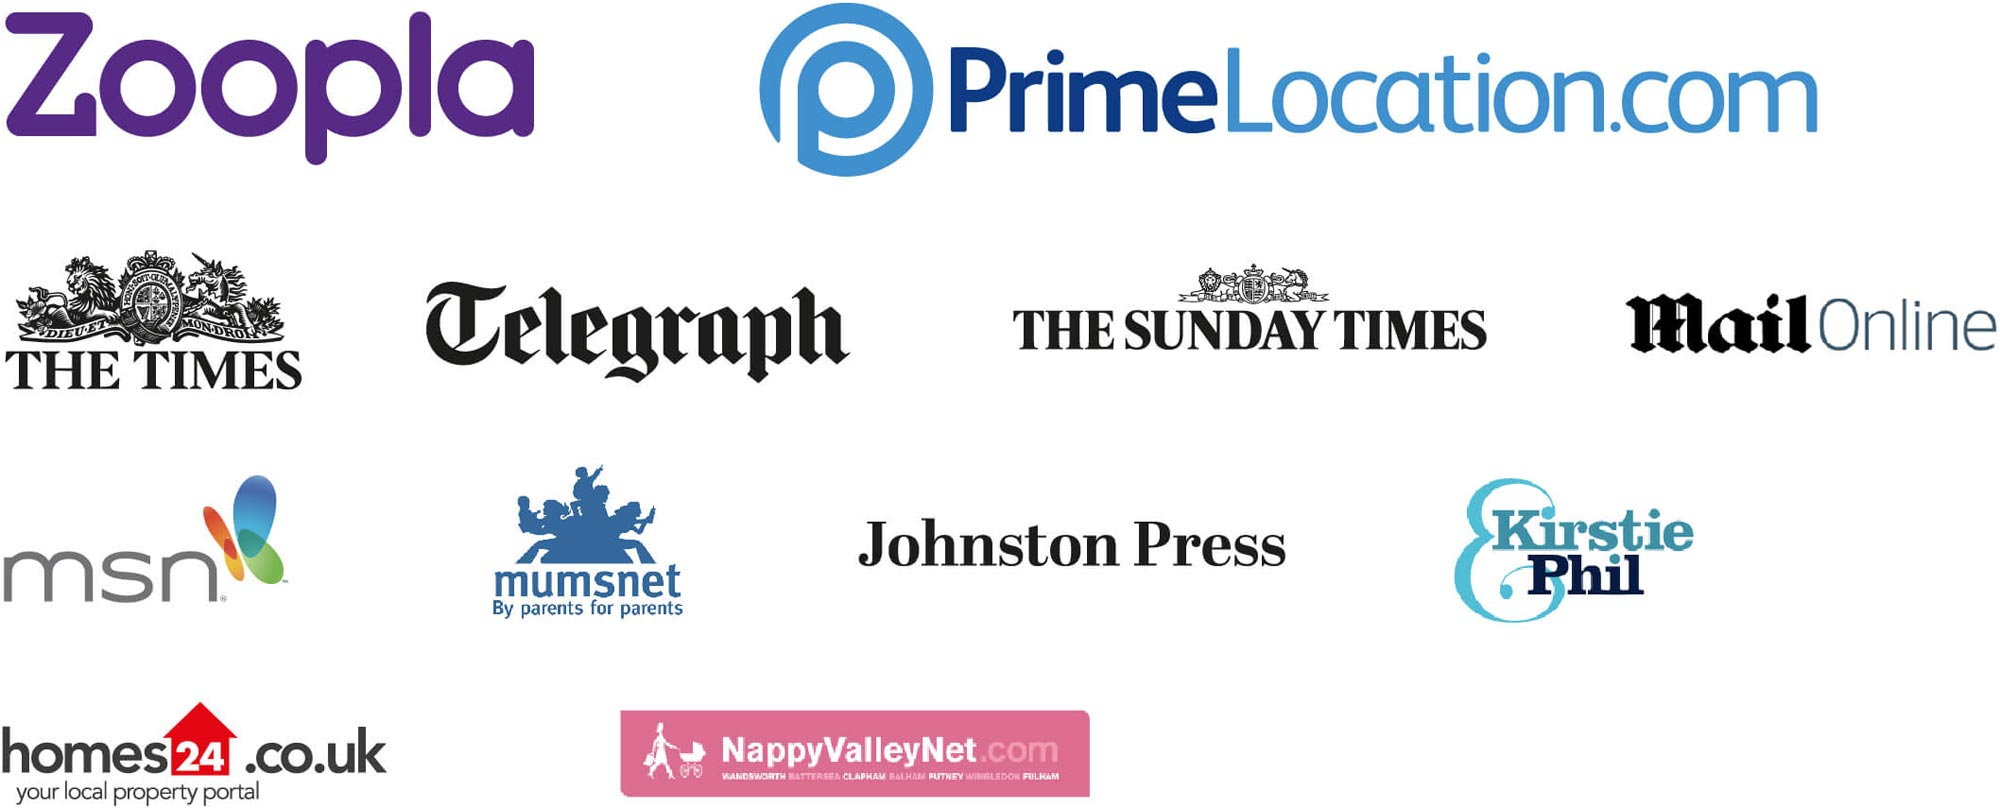 Telegraph, the Times and the Sunday Times, plus MSN, Mumsnet, Homes 24.co.uk, Kirstie and Phil websites